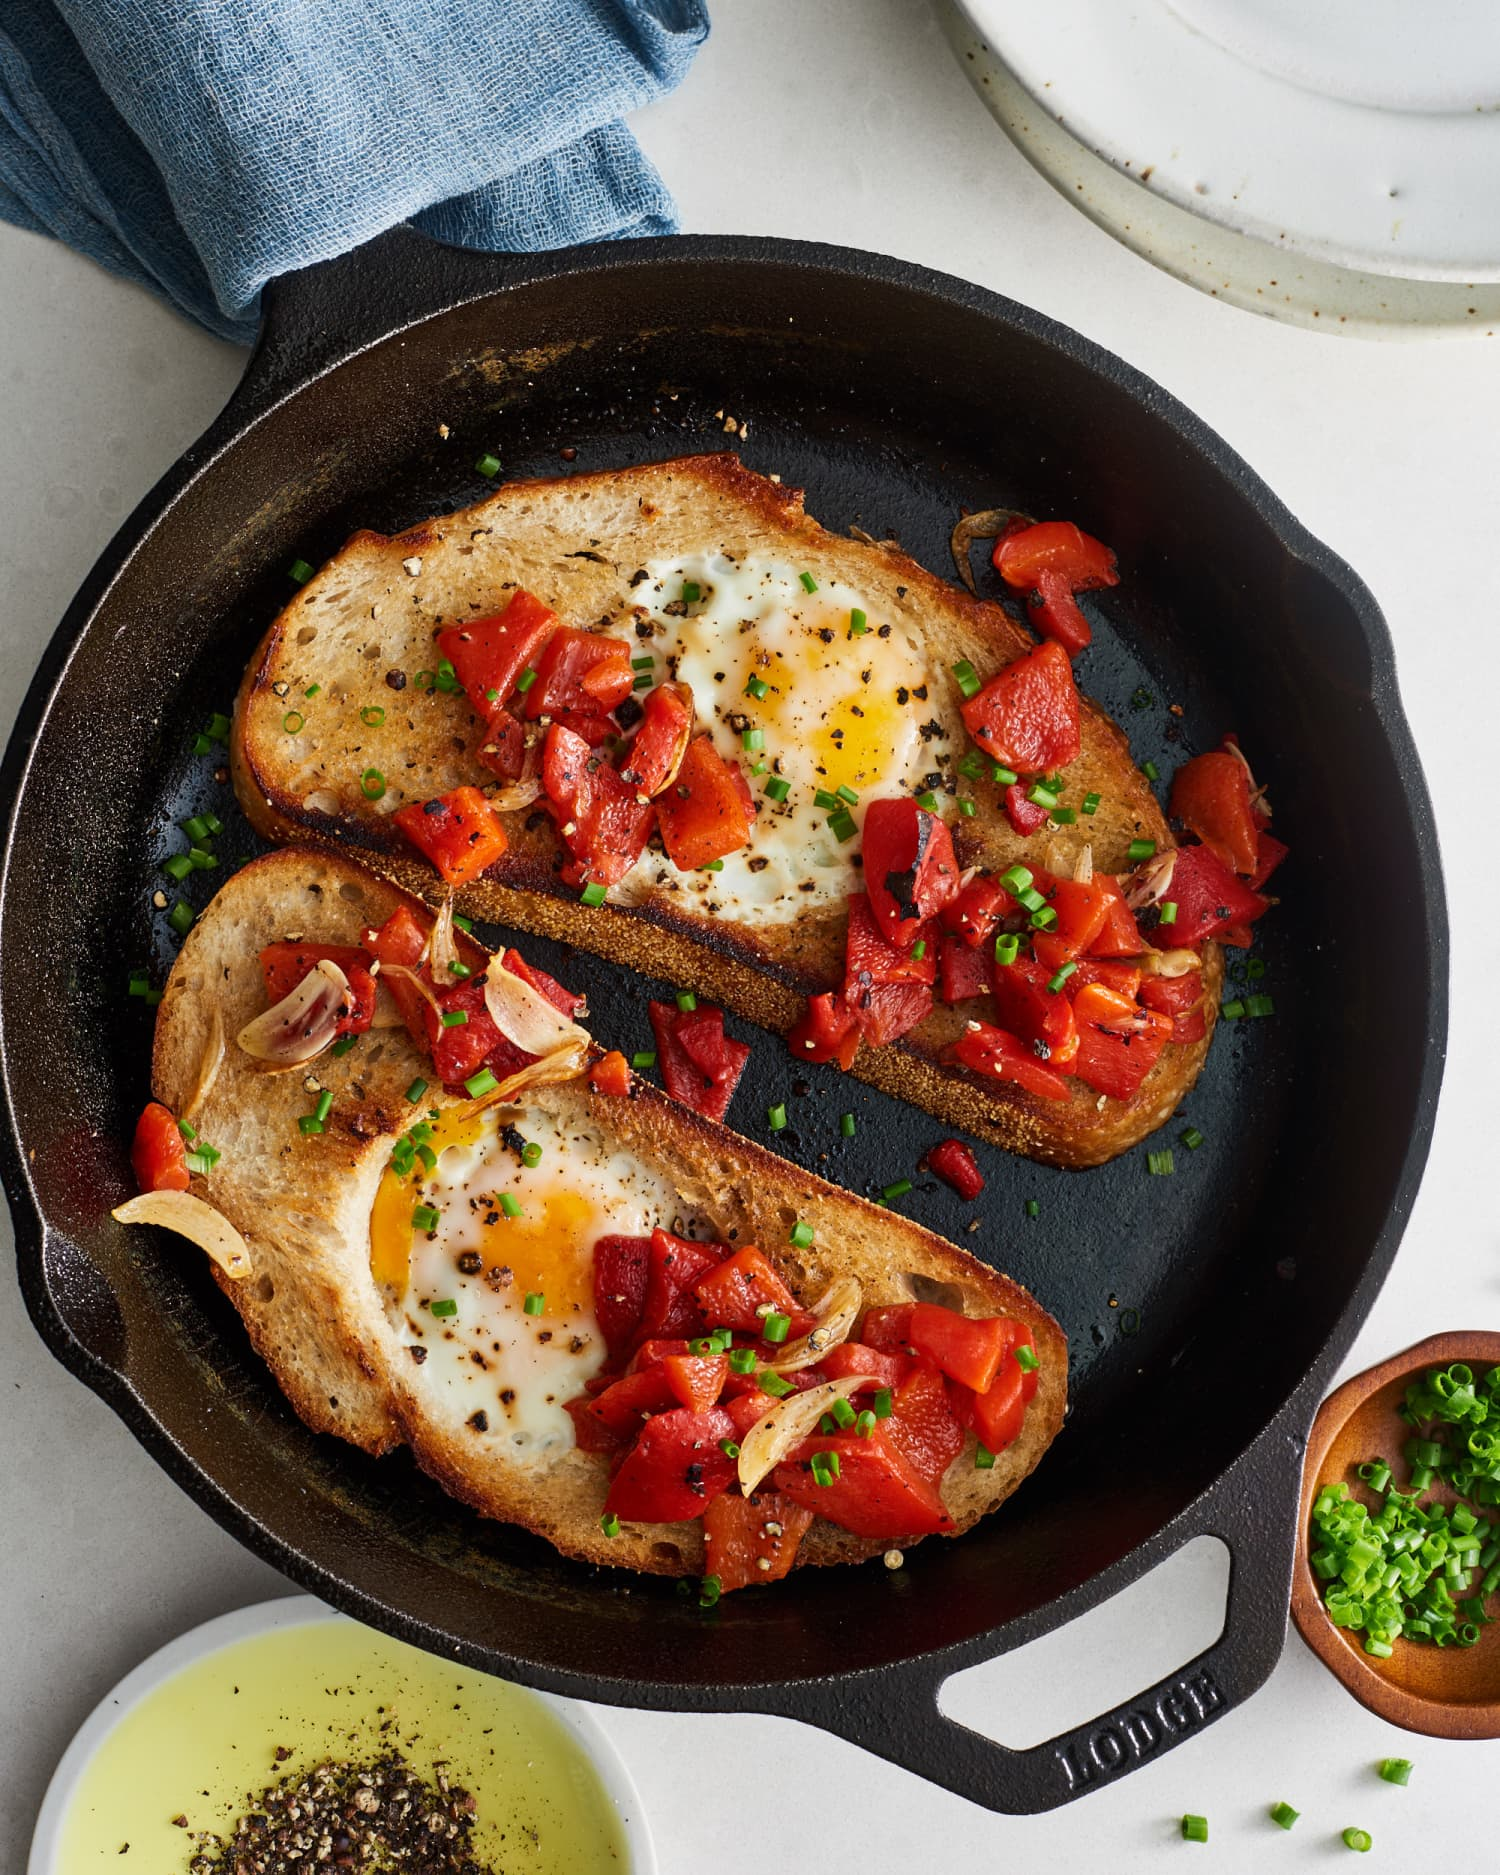 """""""Moonstruck Eggs"""" Are the Italian-American Twist on Egg-in-a-Hole You've Been Missing Out On"""